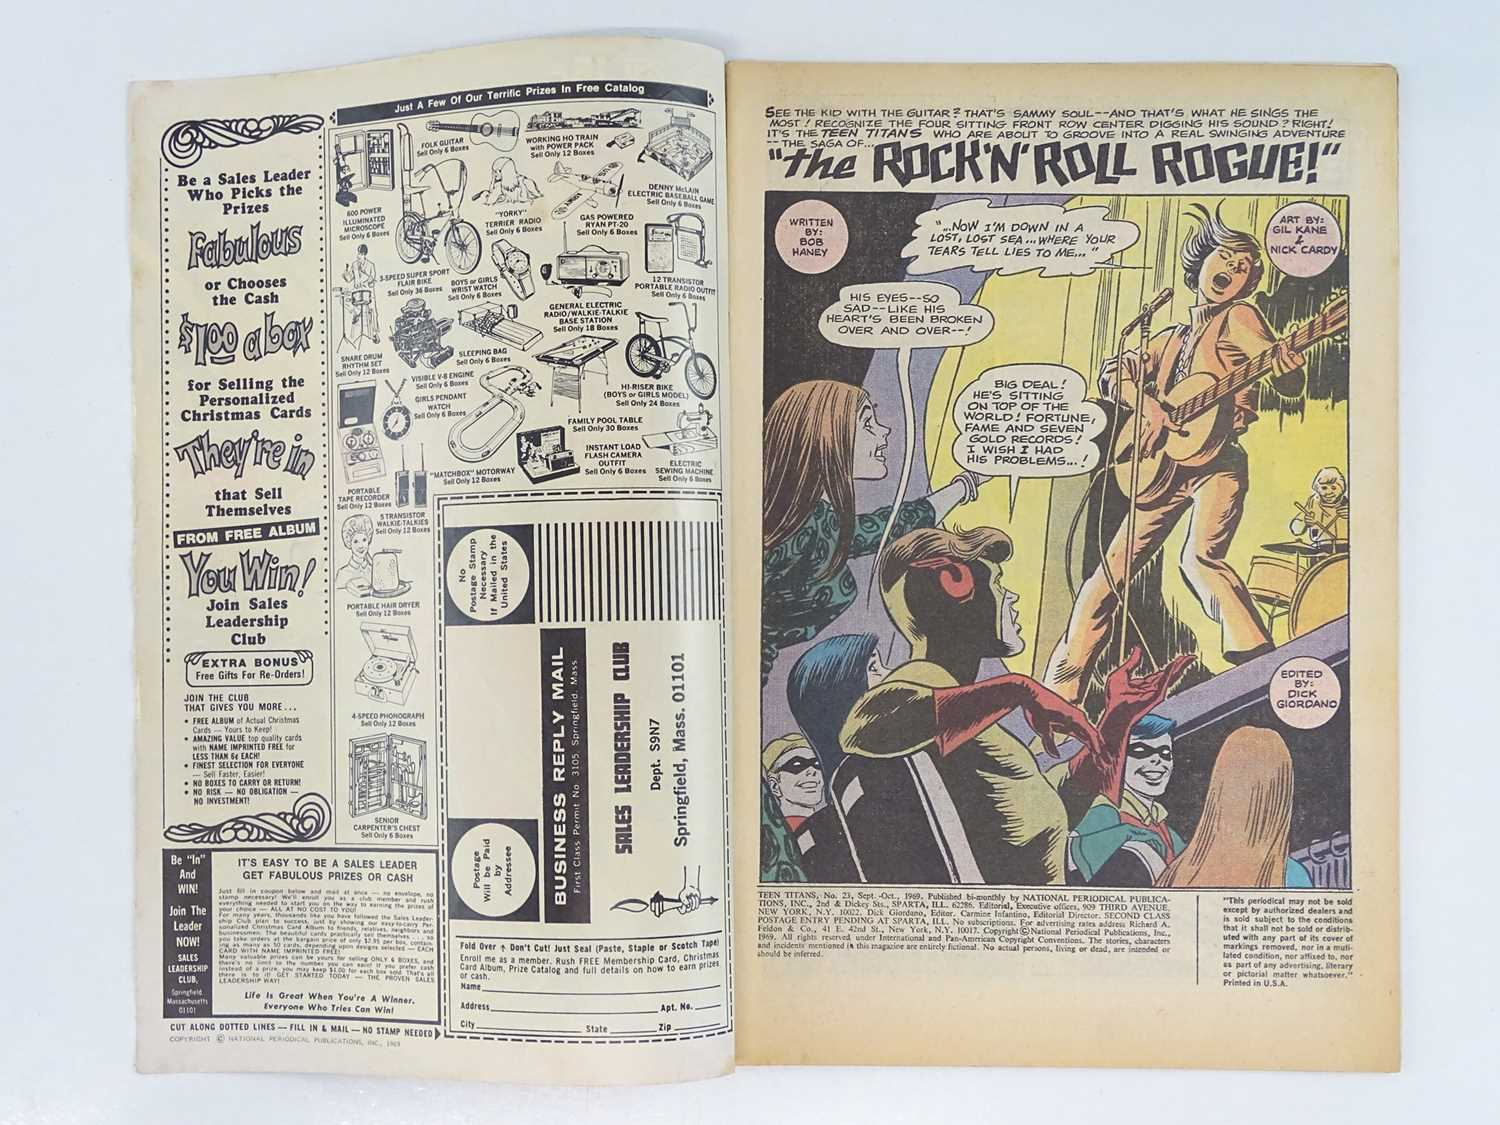 TEEN TITANS #23 - (1969 - DC - UK Cover Price) - Classic DC Cover - New costume for Wonder Girl - Image 3 of 9